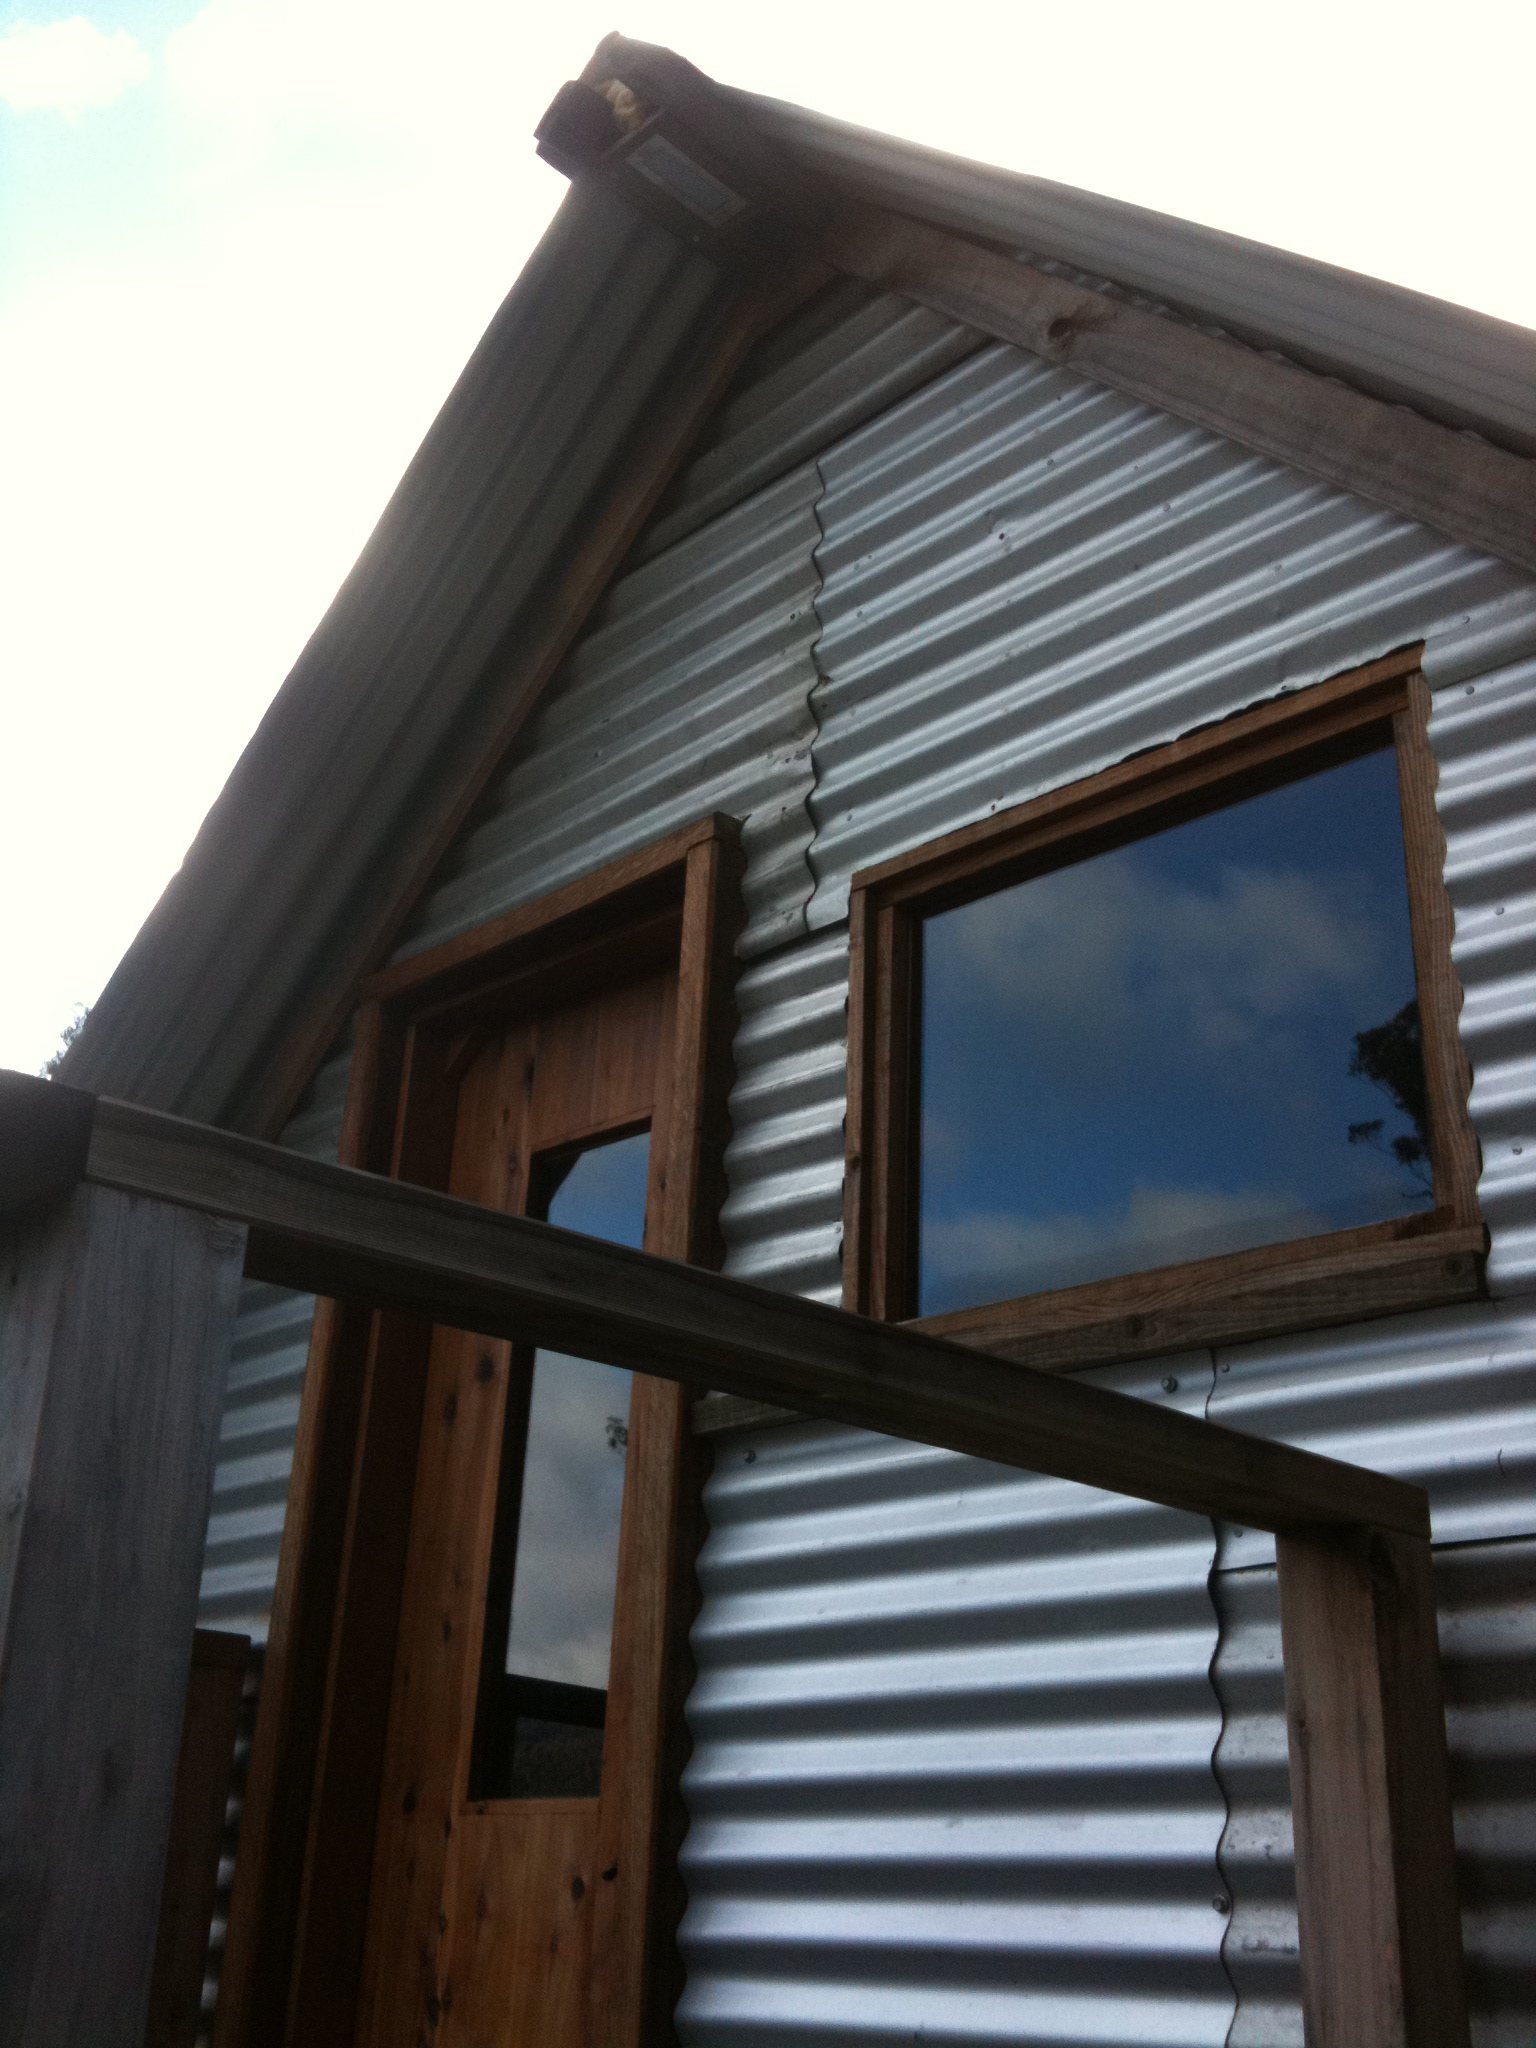 The Payne's Hut Loft: It inspires poetry…